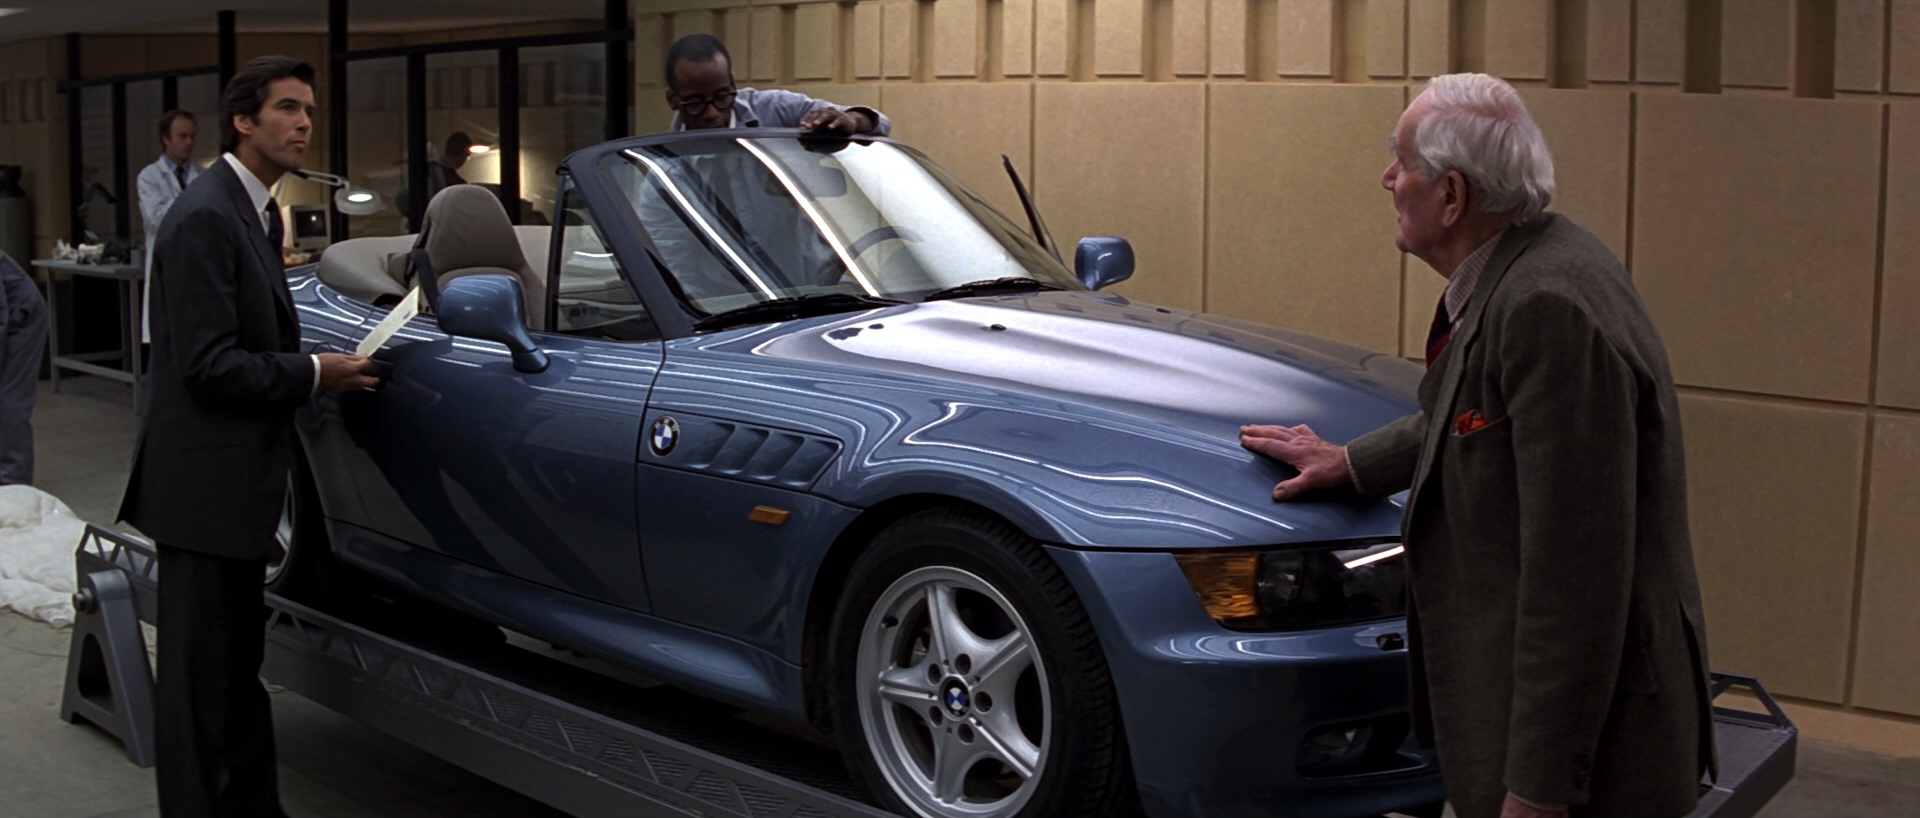 Image Goldeneye Q Demonstrates The Bmw Z3 Jpg James Bond Wiki Fandom Powered By Wikia